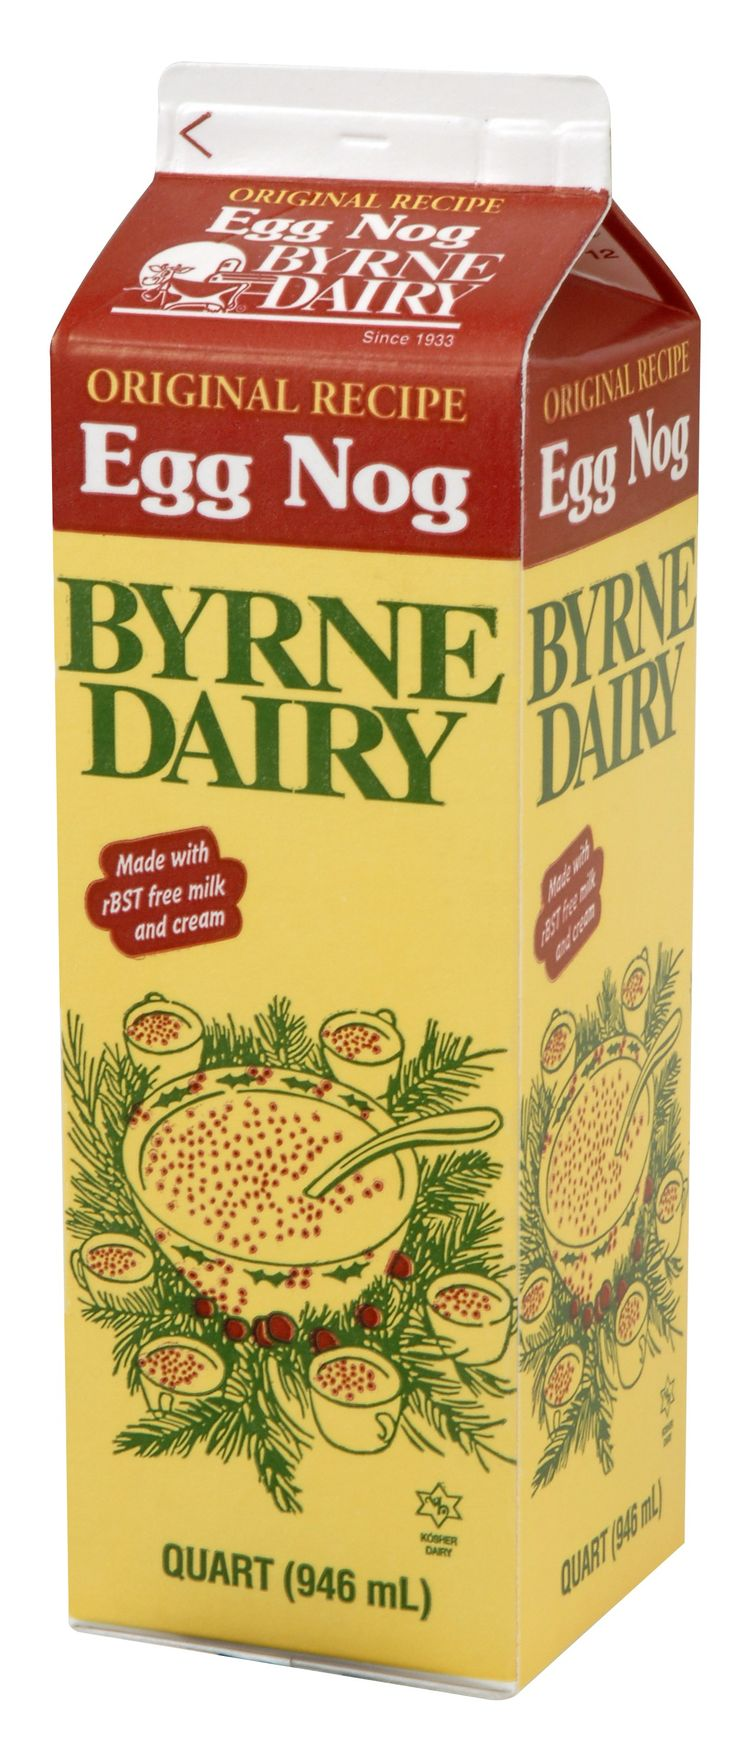 The Original Byrne Dairy Egg Nog... is there anything better?